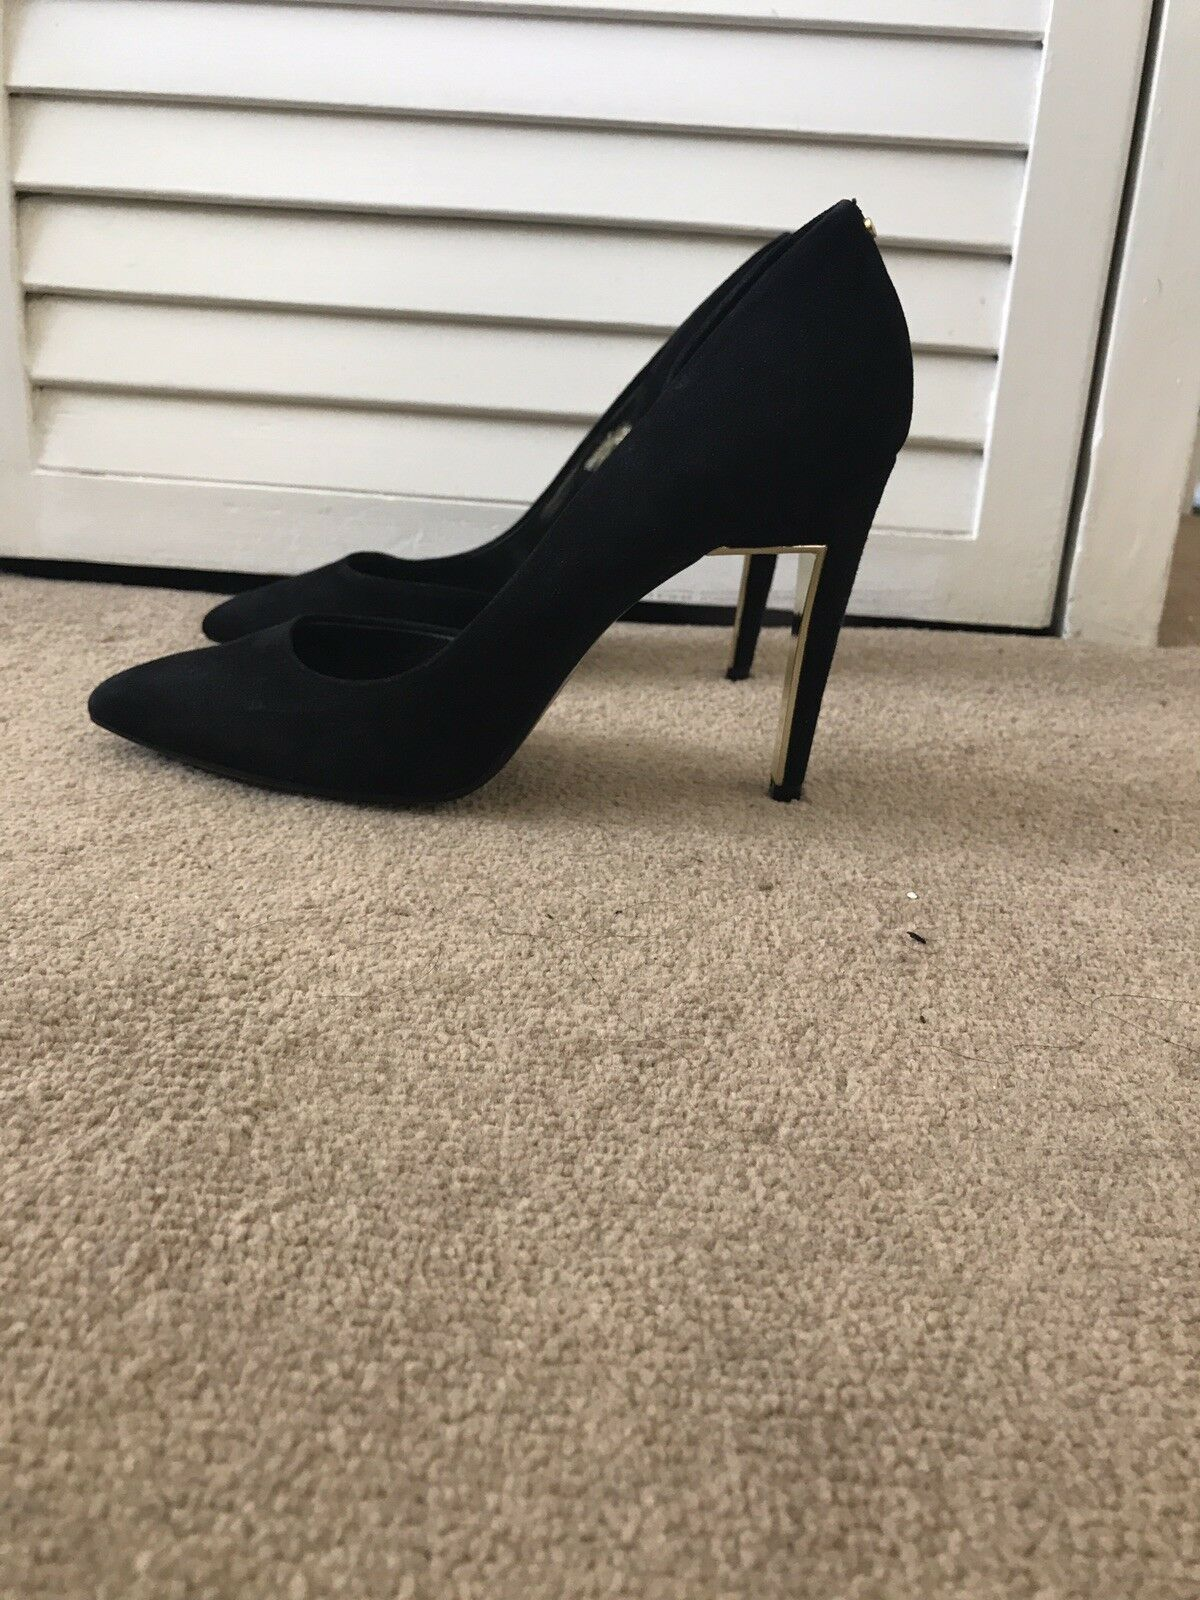 Black Suede Red Baker Court shoes Size 7   40 - Only Worn 3 Times